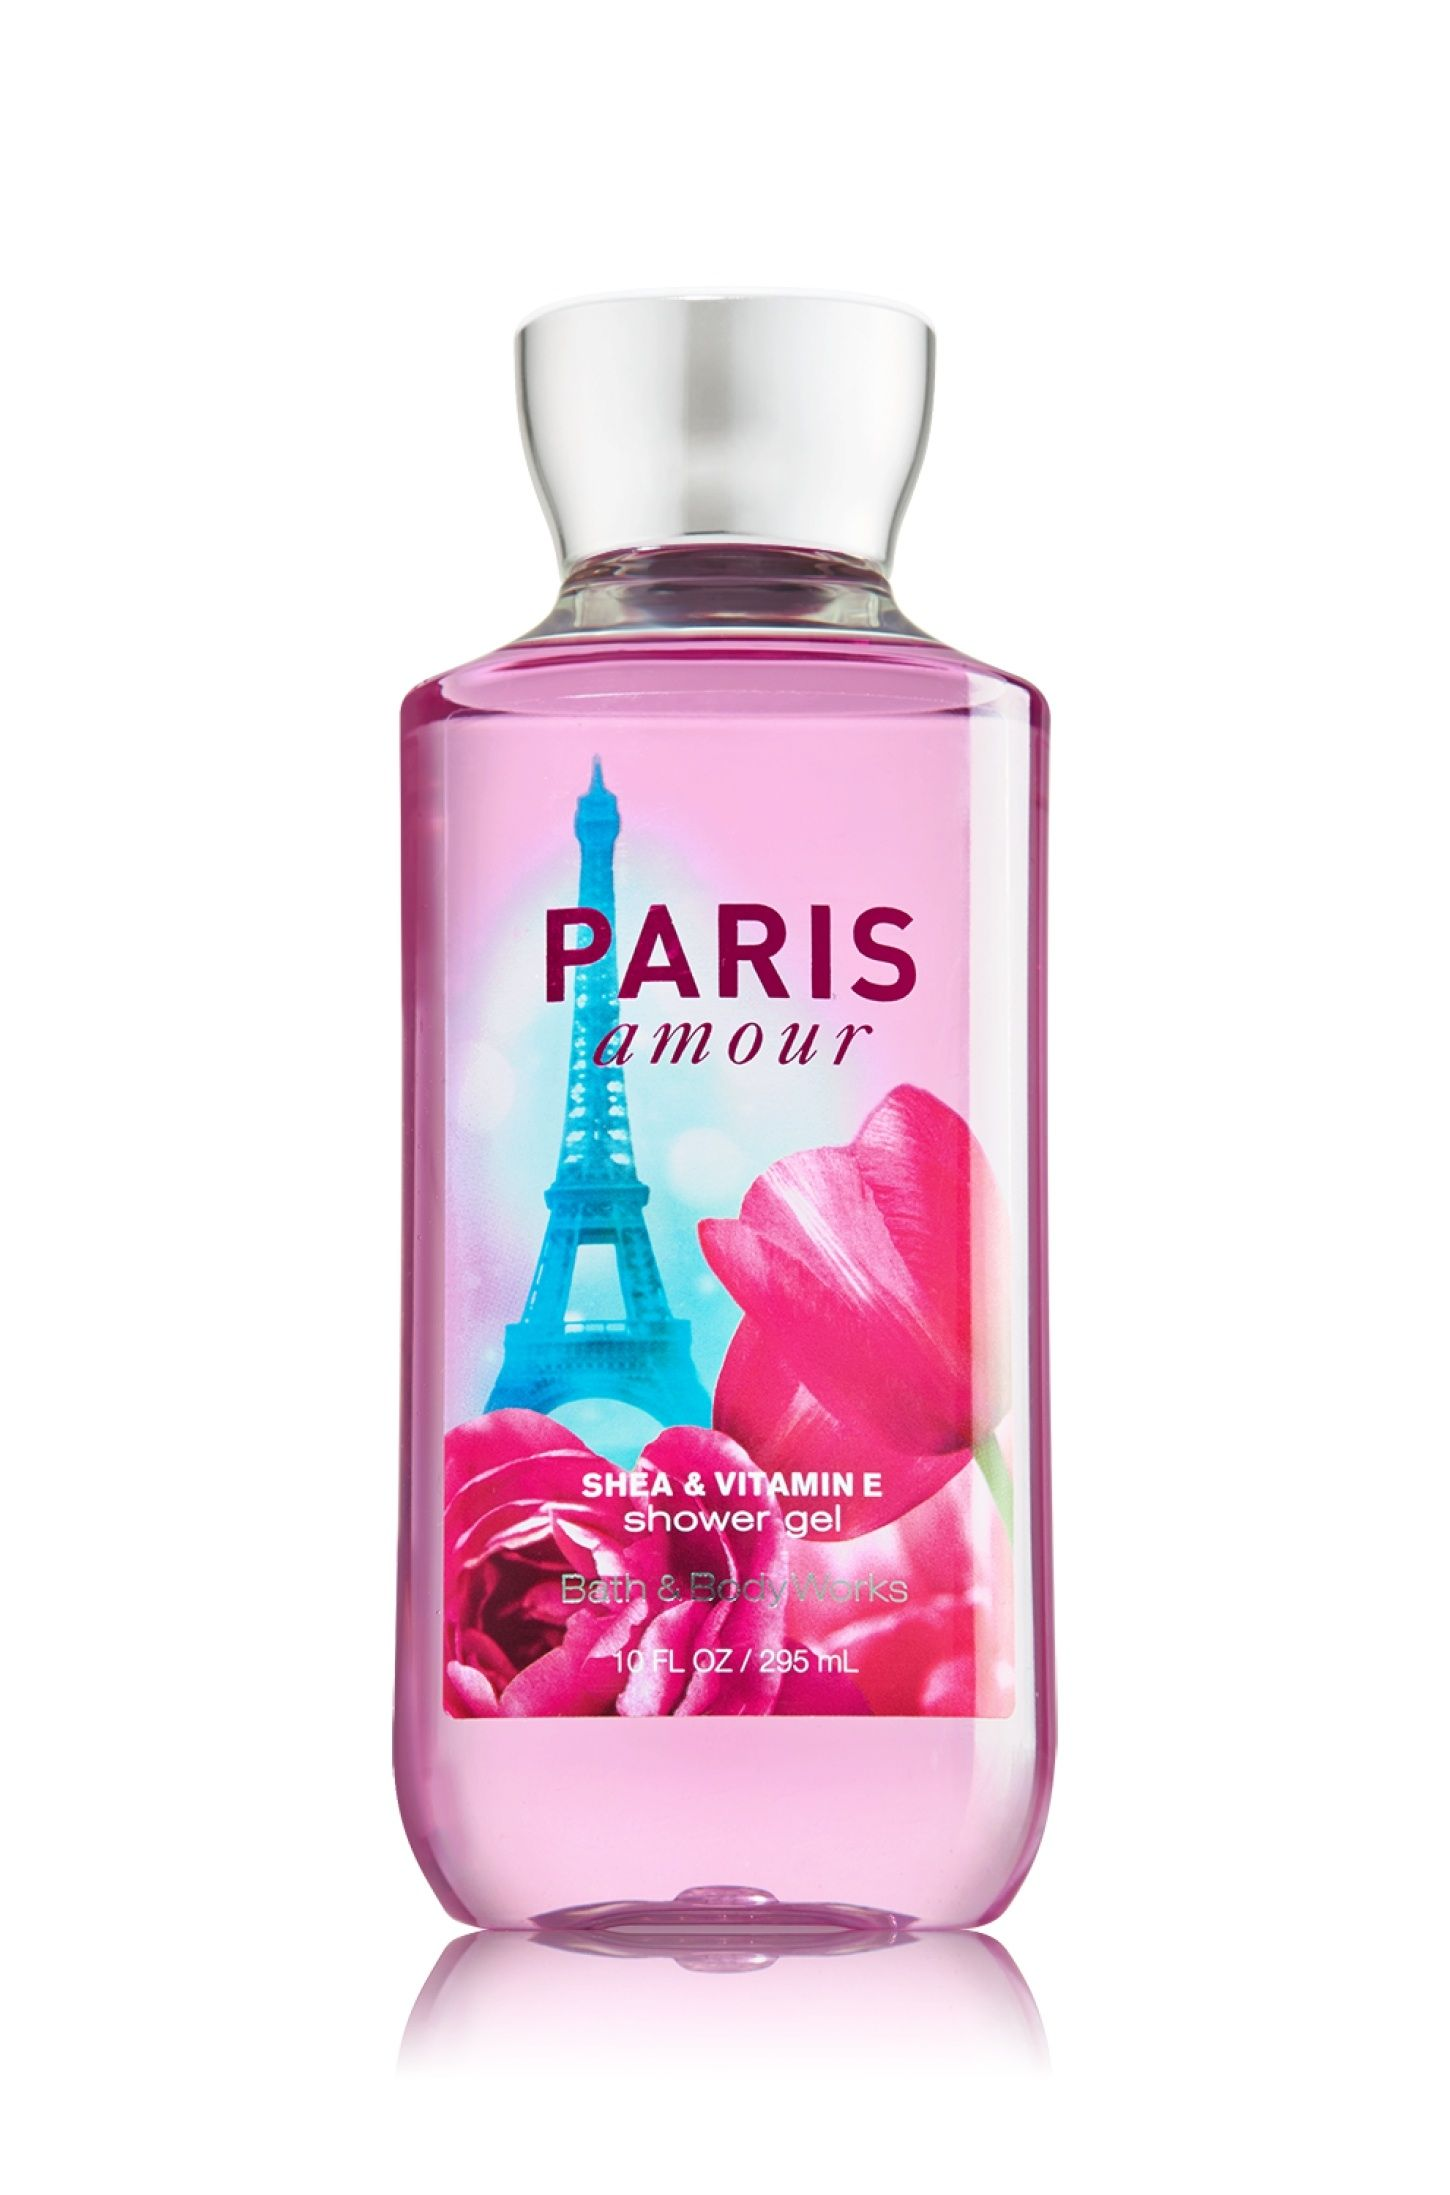 Paris Amour Shower Gel Bath And Body Works Bath And Body Works